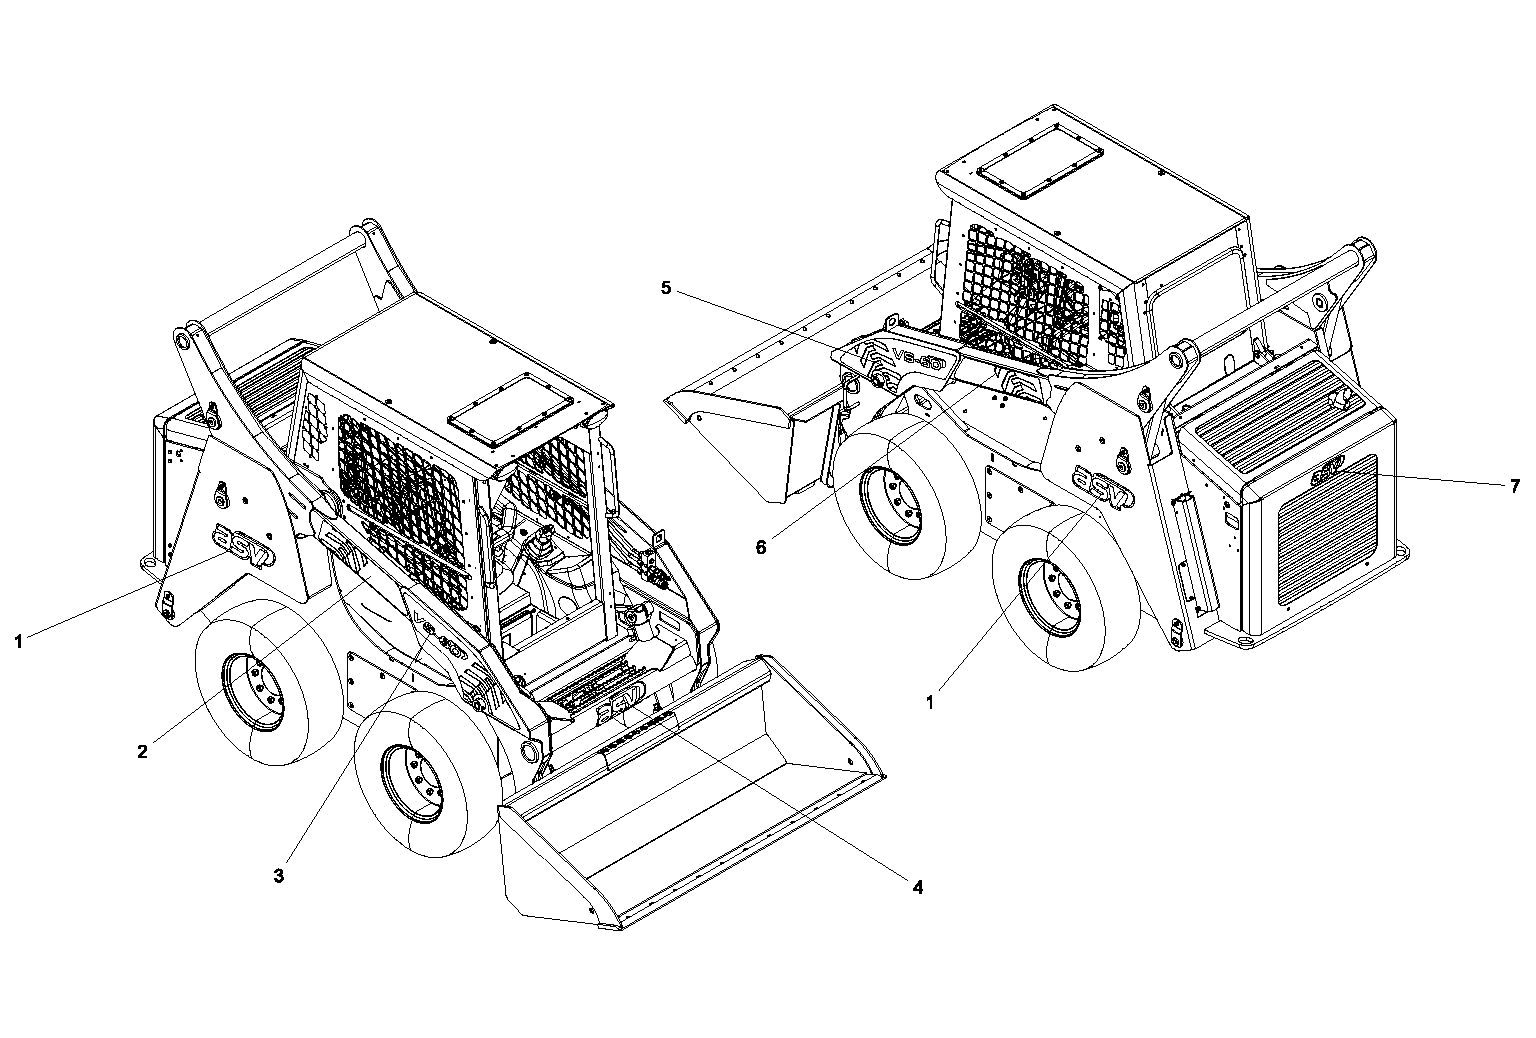 Diagram 9-3A ASV Graphics